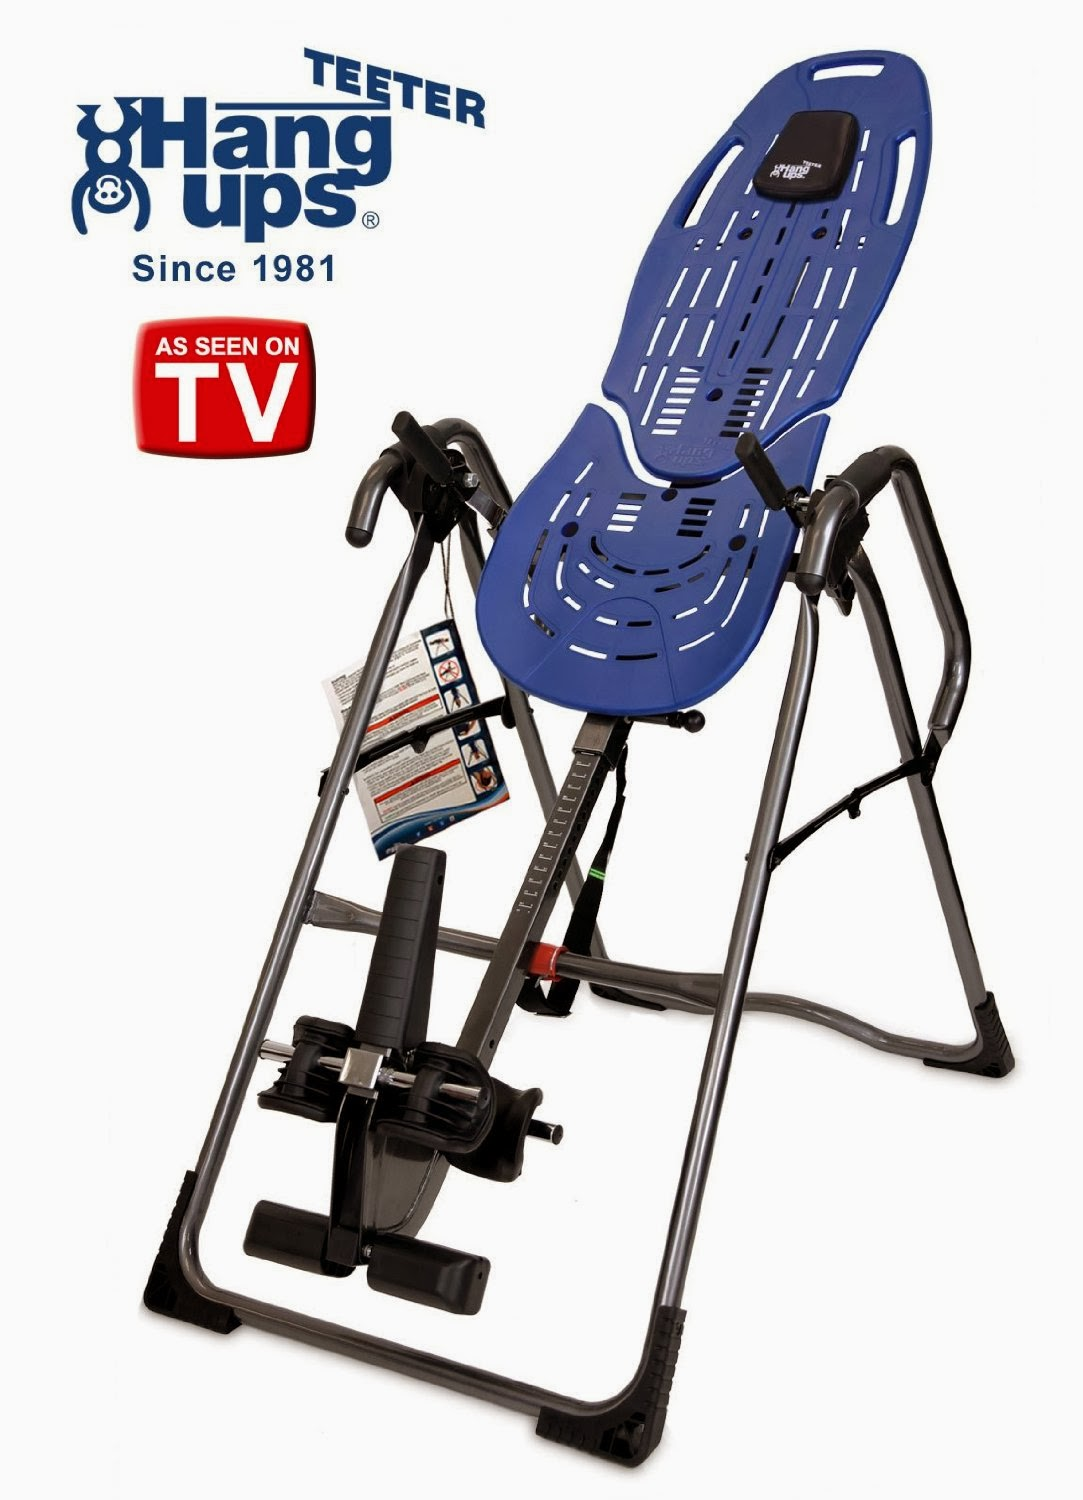 Teeter Hang Ups EP 960 Inversion Table for back pain relief, picture, review features & specifications